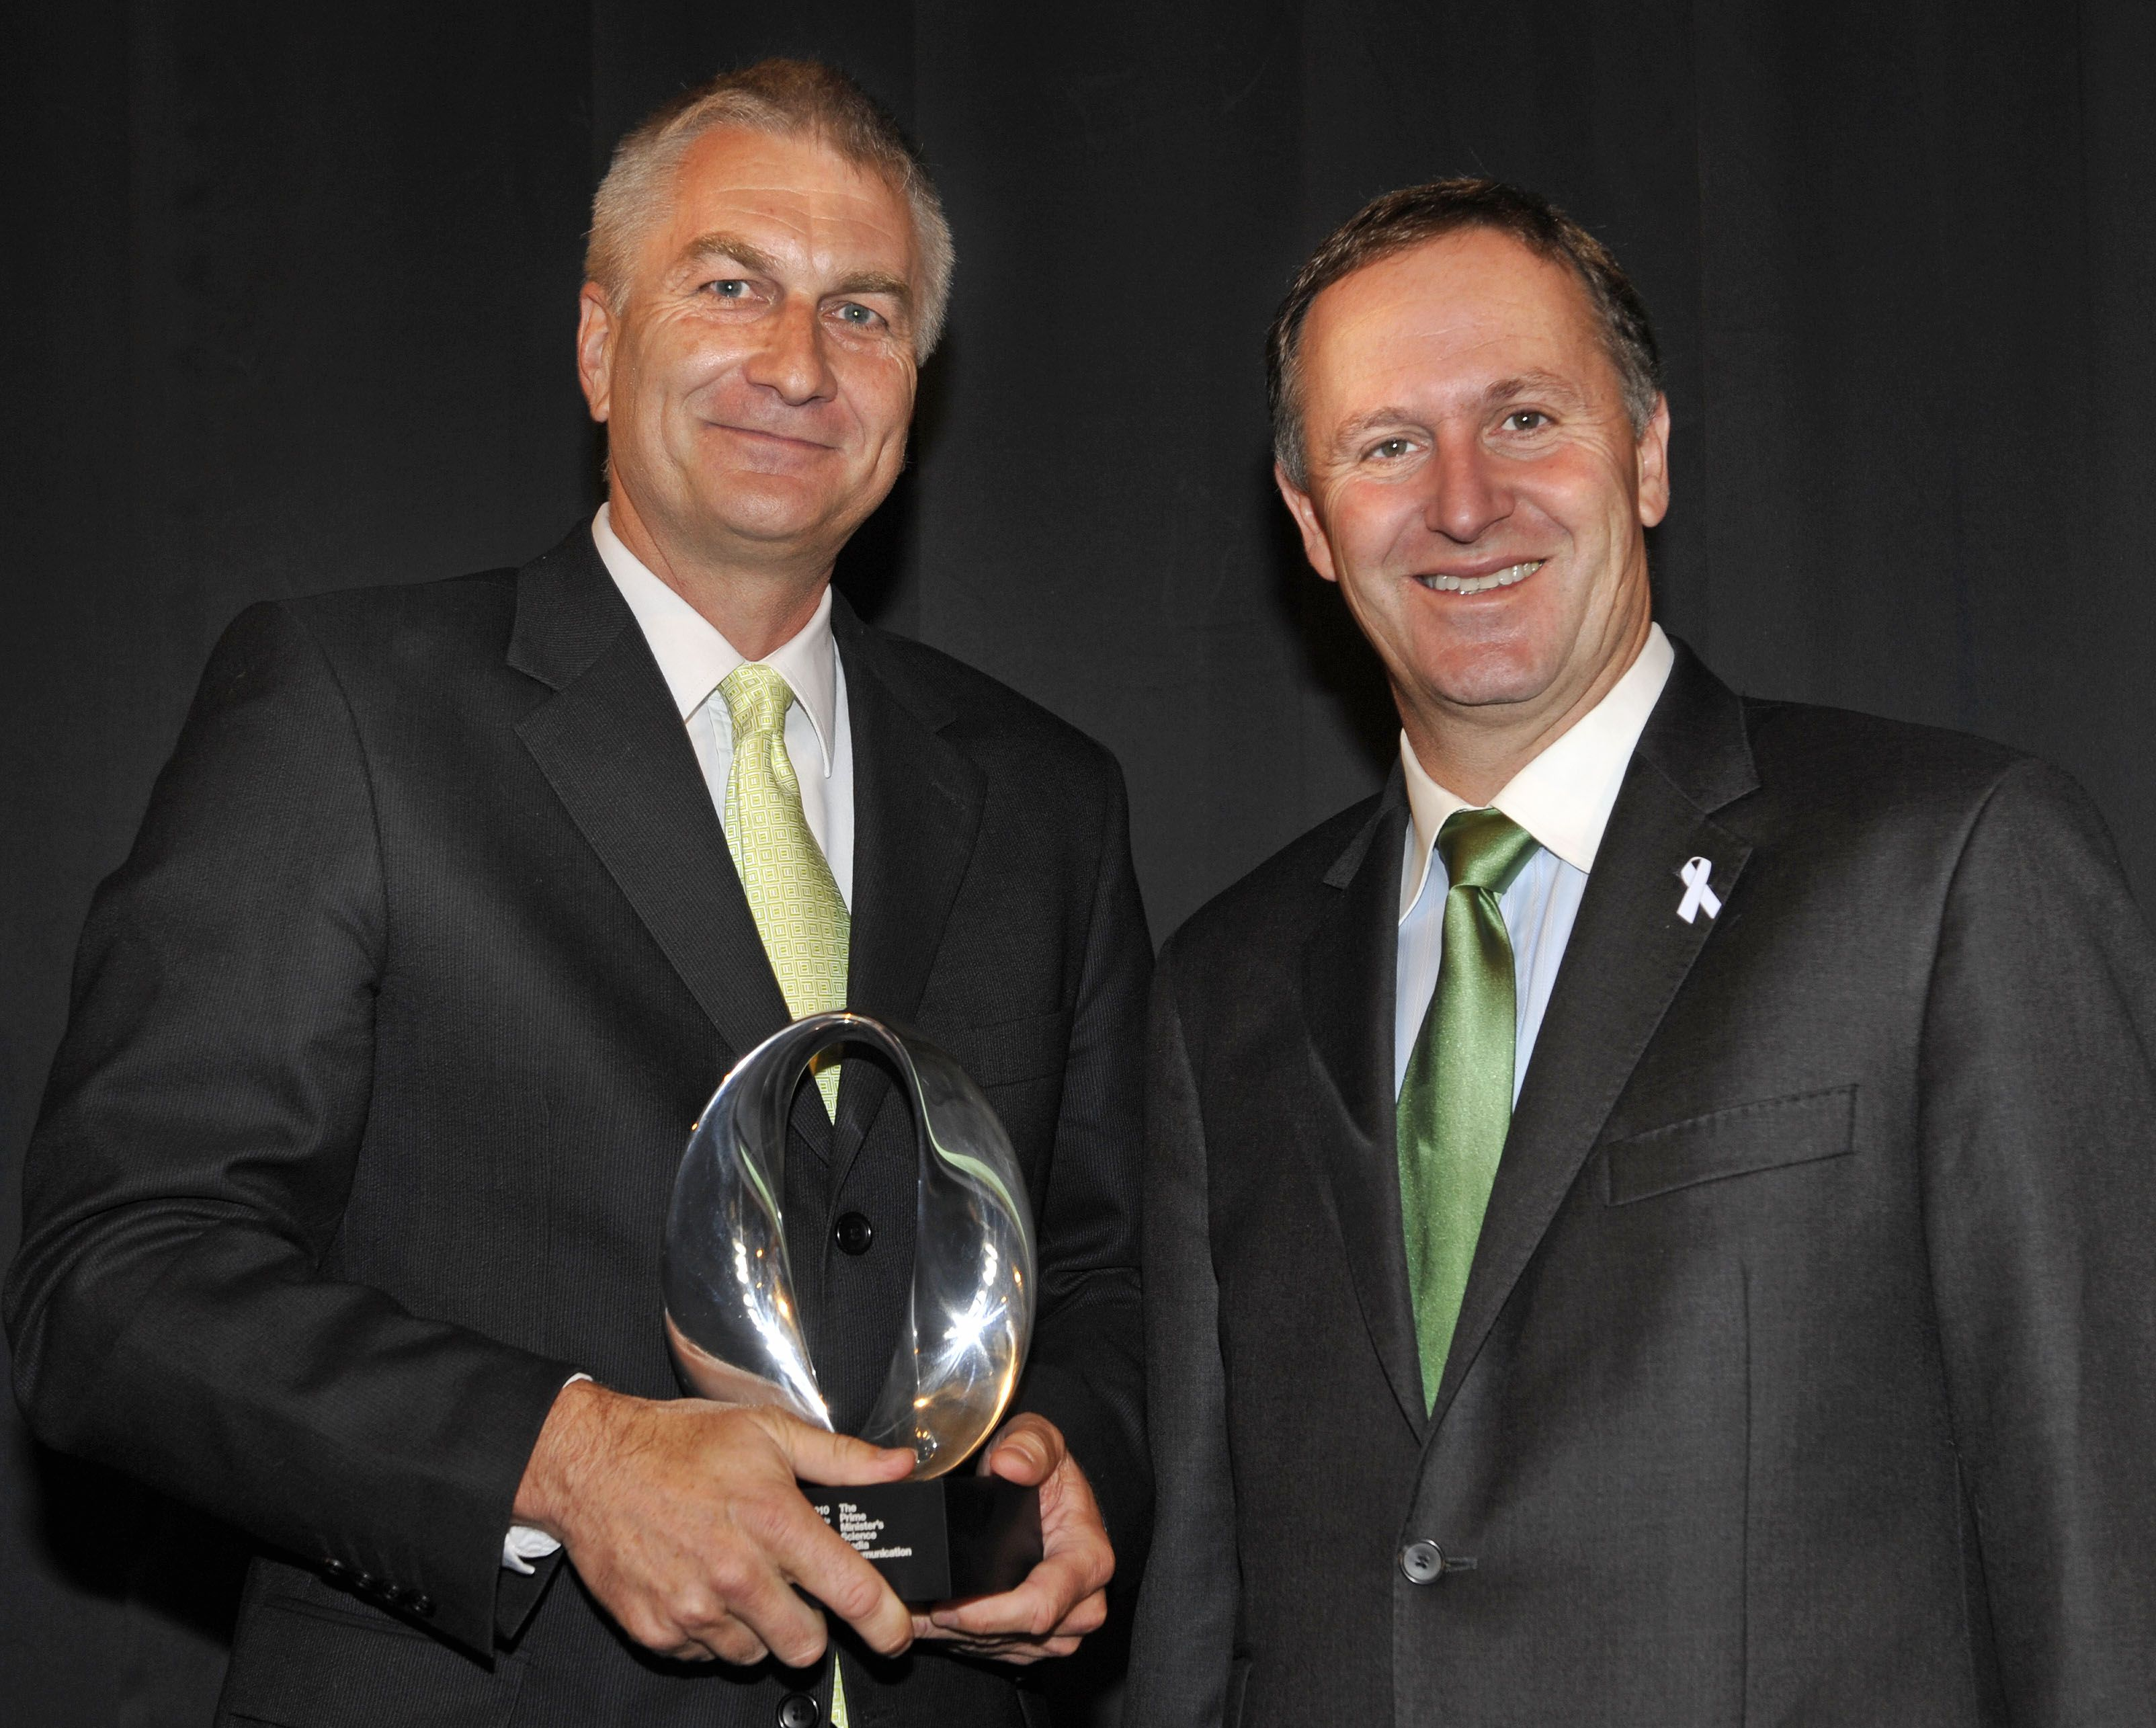 Image: The Prime Minister's Science Media Communication Prize 2010